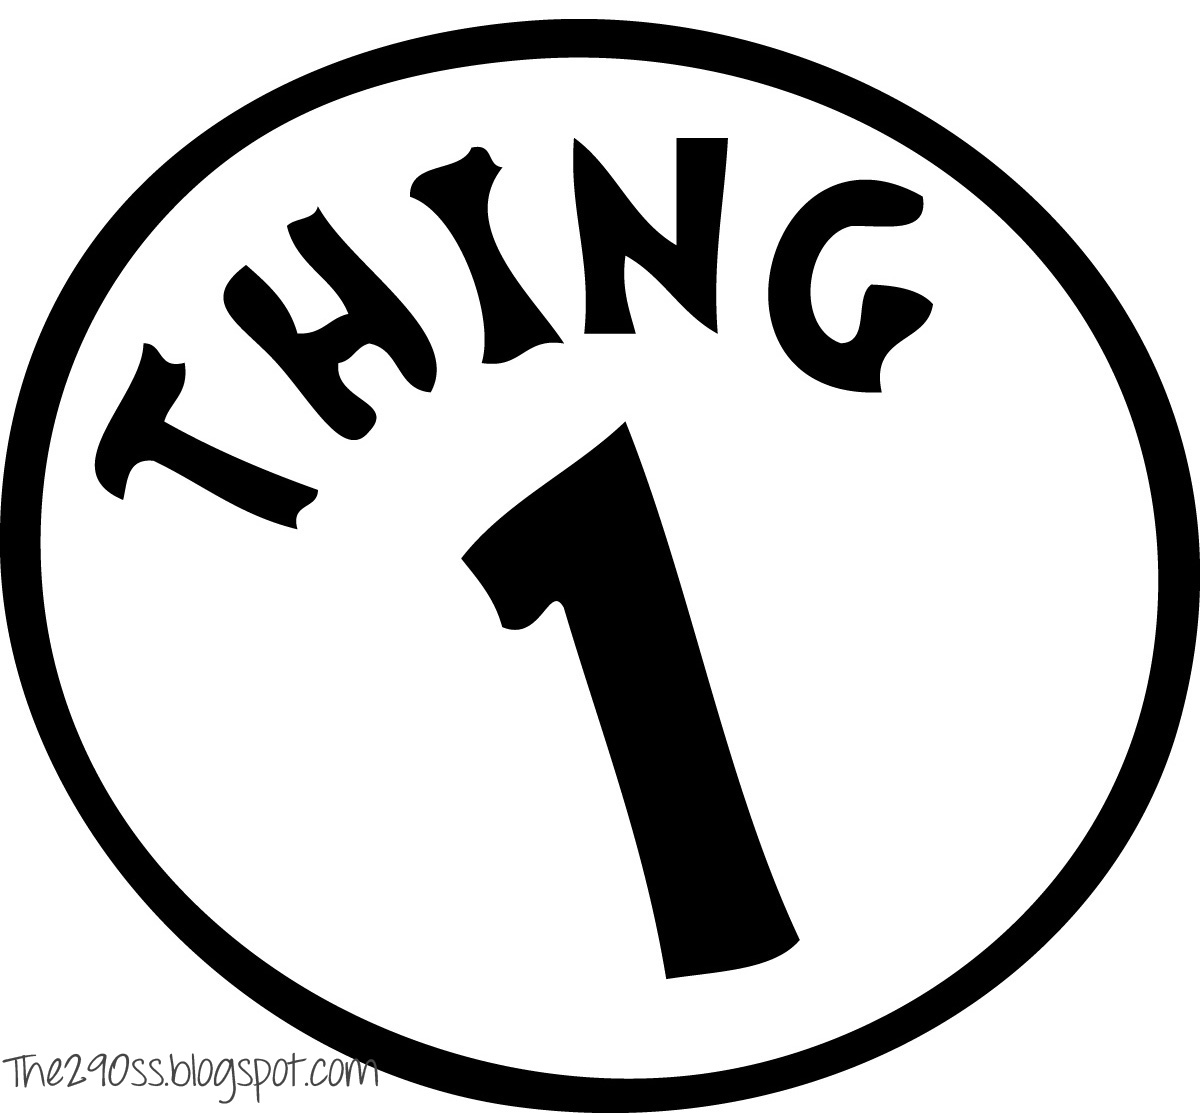 Thing 1 and thing 2 logo clipart graphic Diy Thing 1 Thing 2 Printables - ClipArt Best graphic